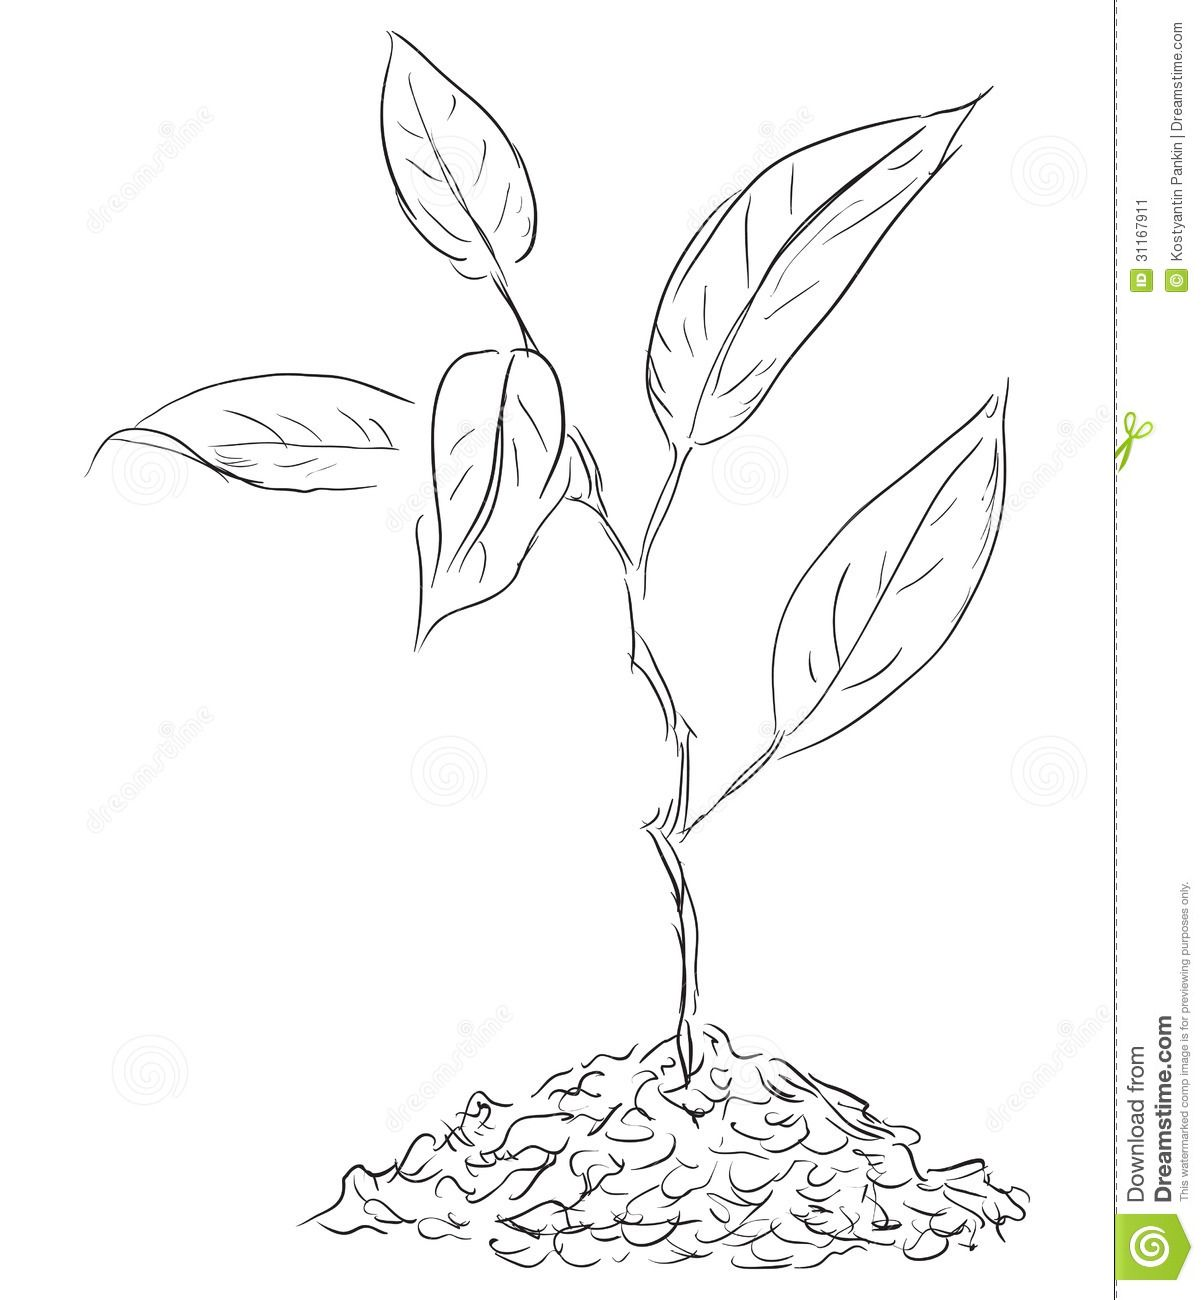 Plant Sprout Drawing